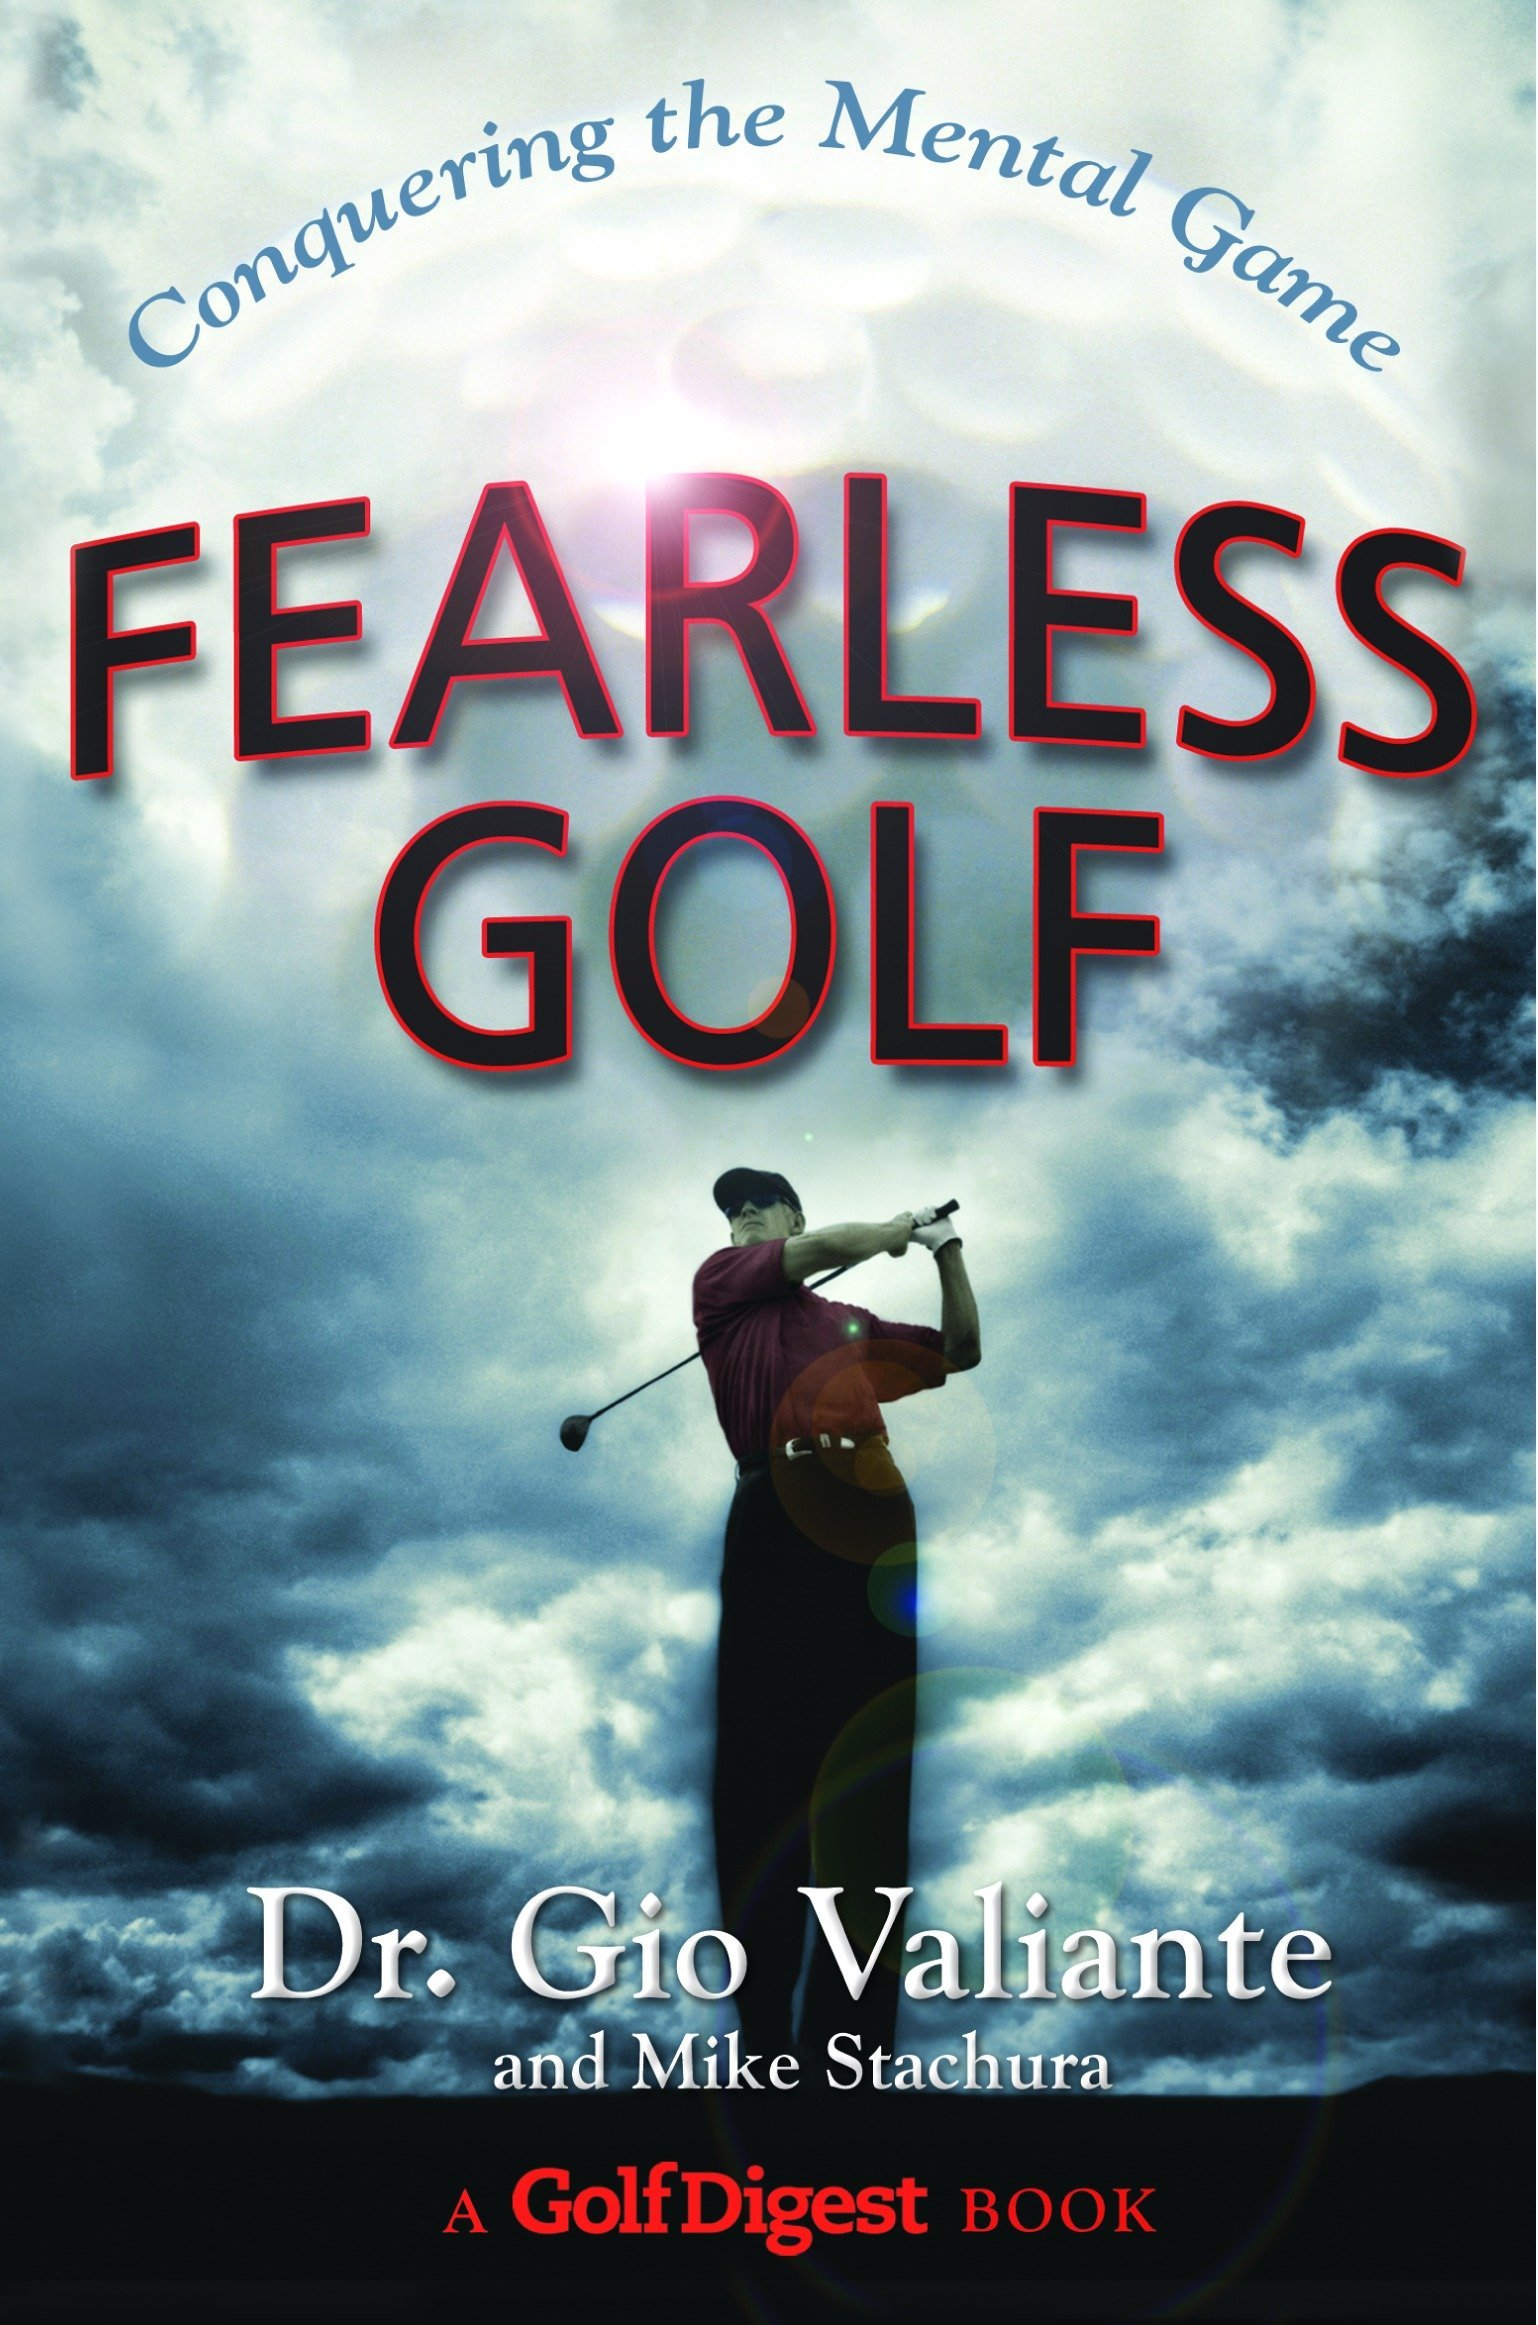 Fearless Golf: Conquering the Mental Game pdf epub